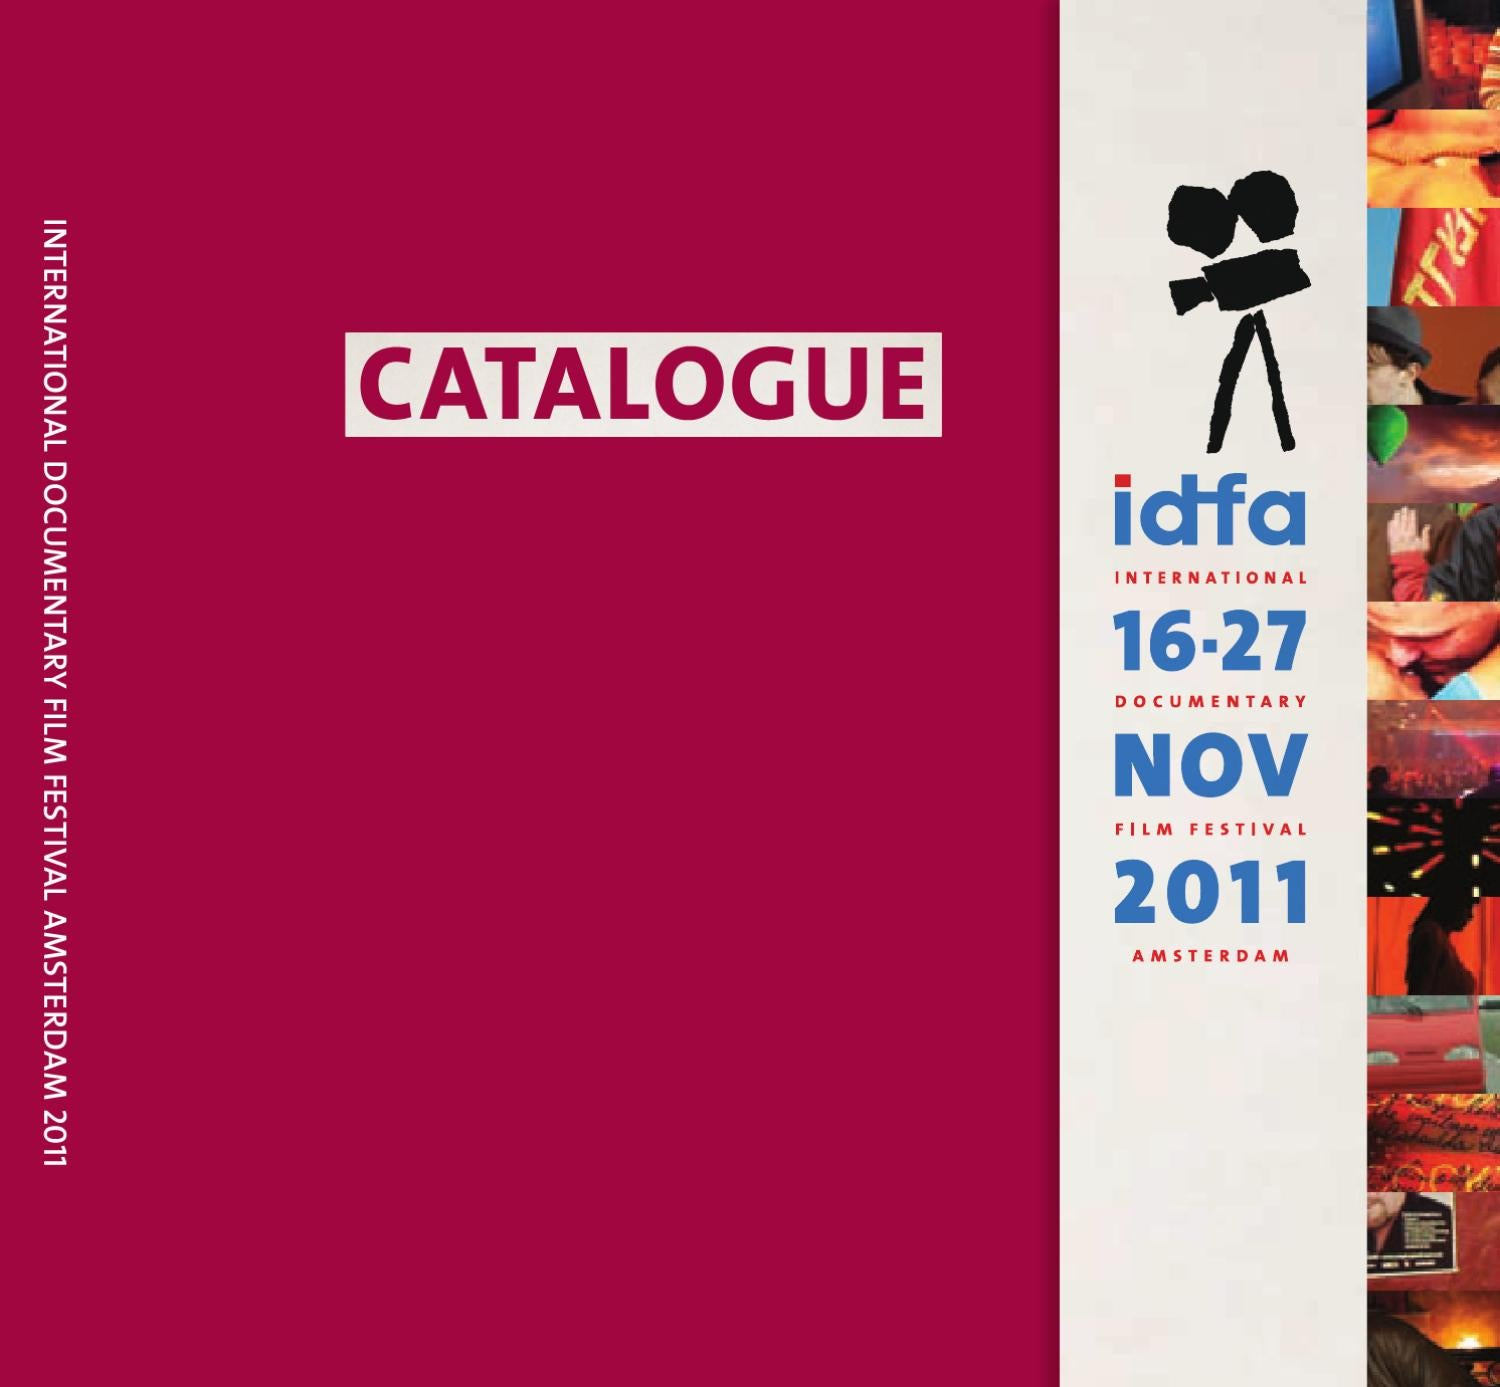 Catalogue IDFA 2011 by IDFA International Documentary Film Festival